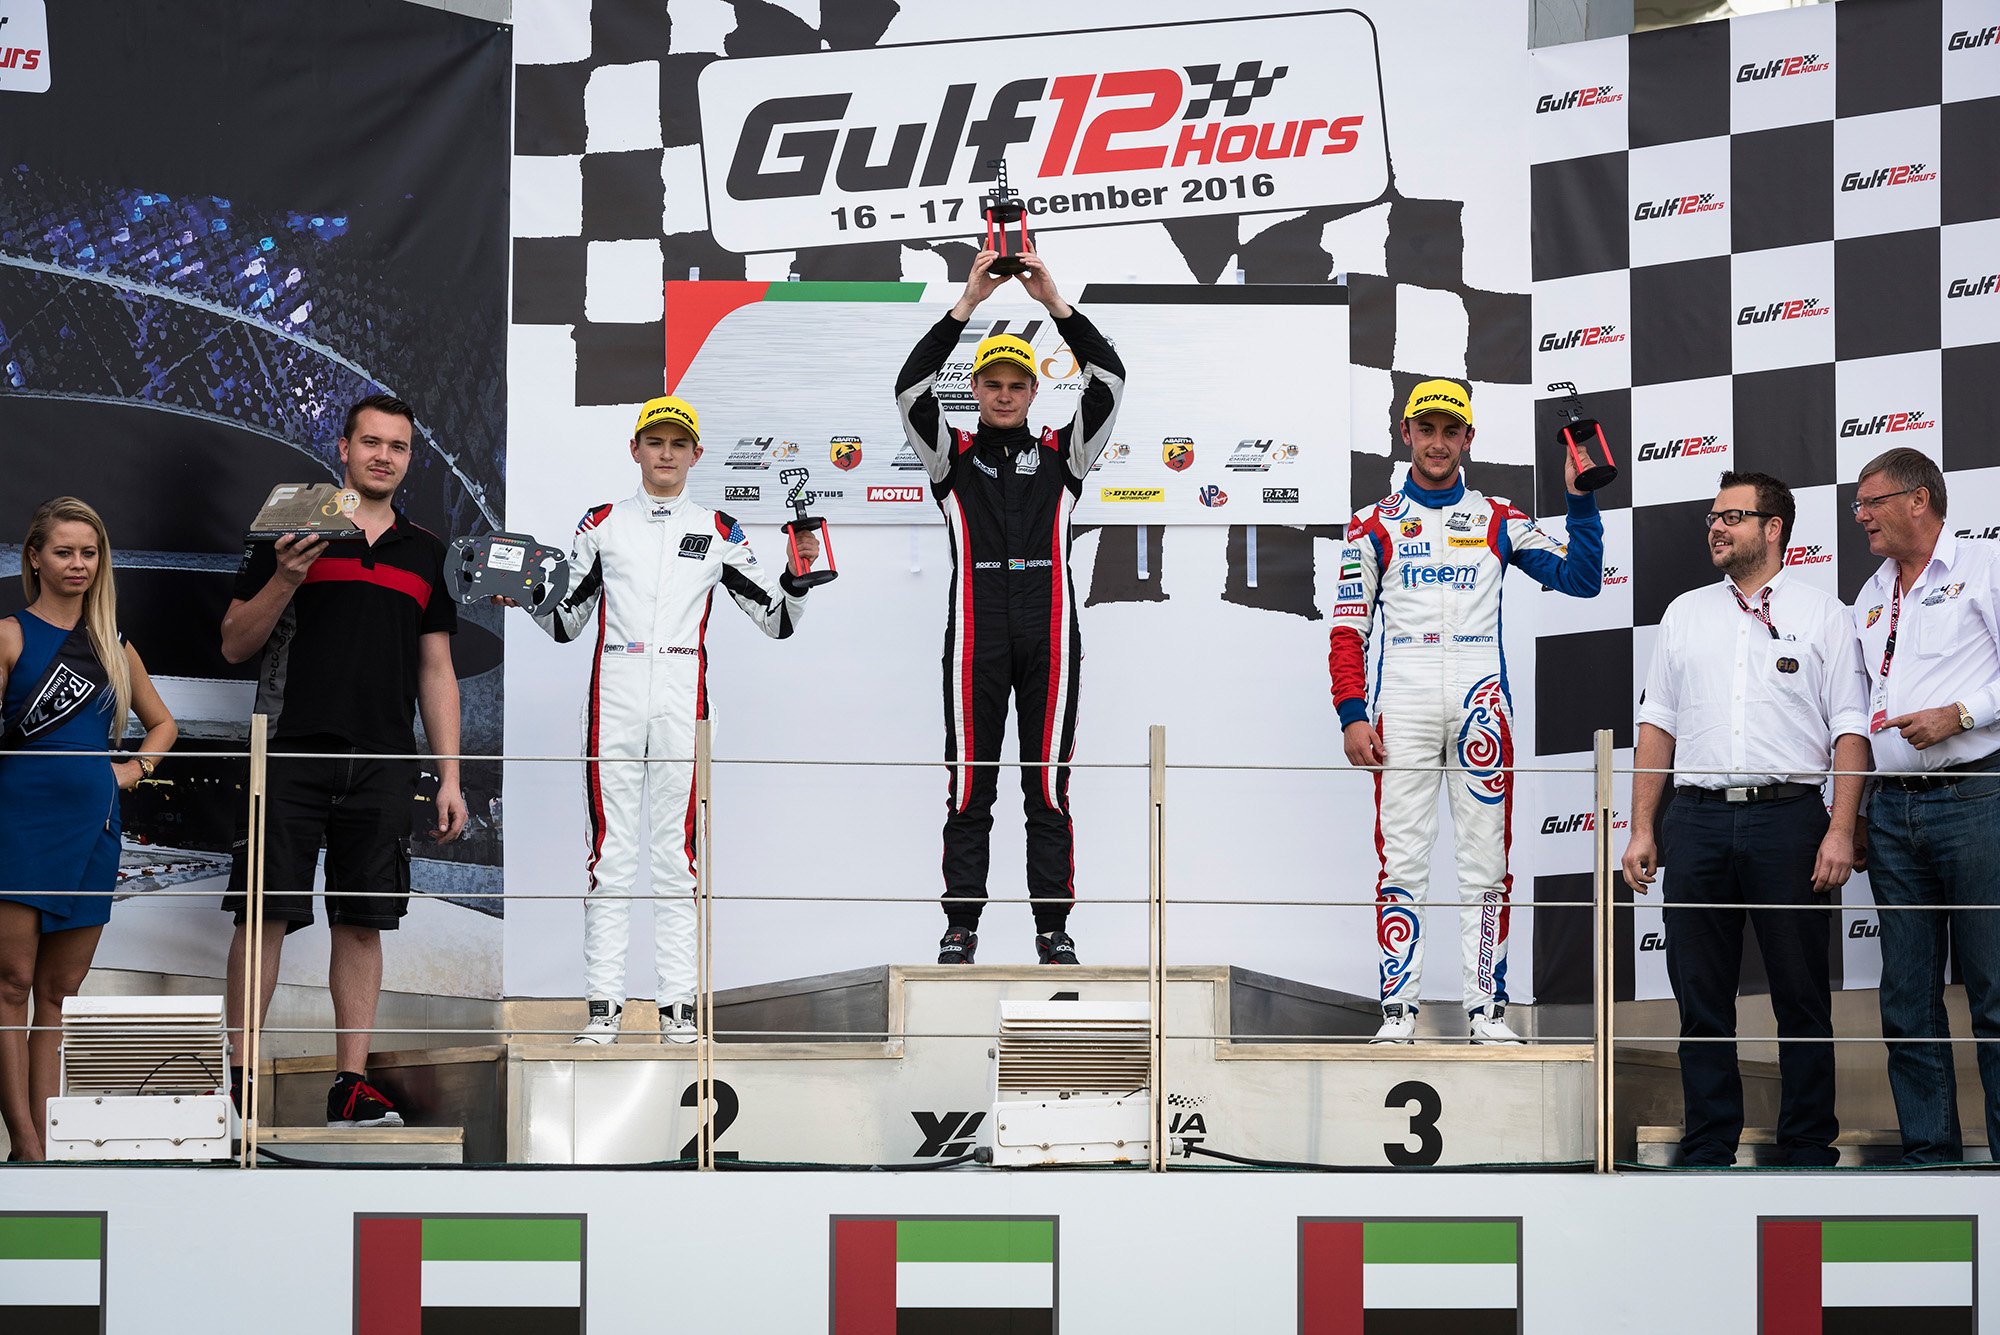 TEAM MOTOPARK CLAIMS VICTORY AT GULF 12 HOURS F4 EVENT WHILE UAE TEAMS PUSH FRONTRUNNERS